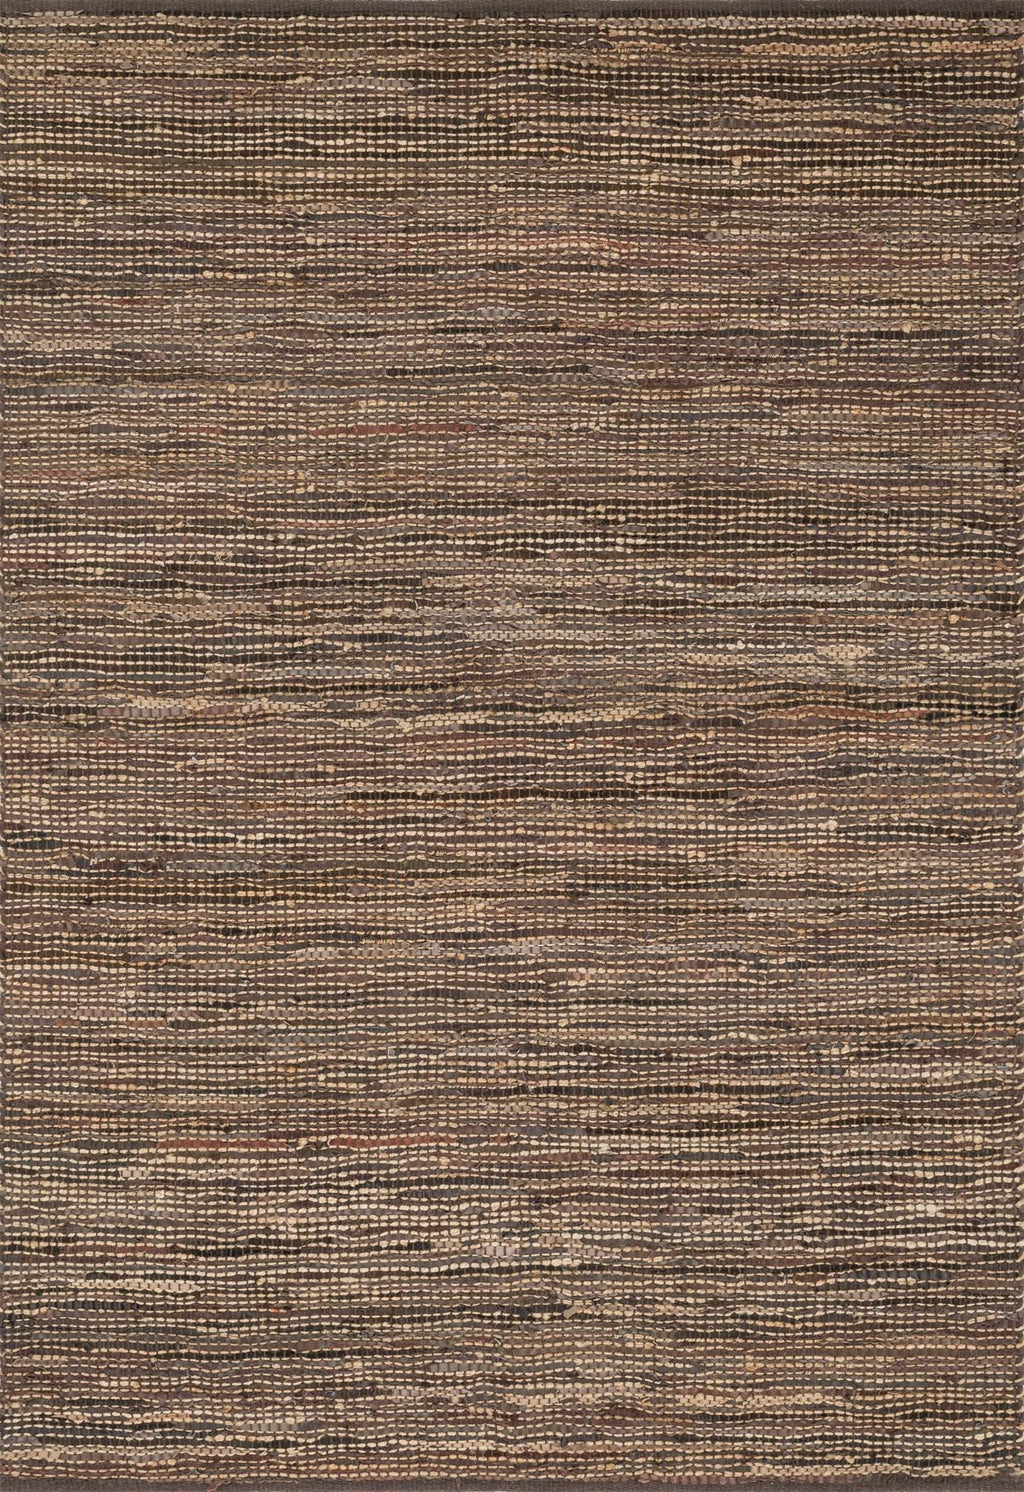 EDGE Collection Rug  in  BROWN Brown Small Hand-Woven Jute/Hemp